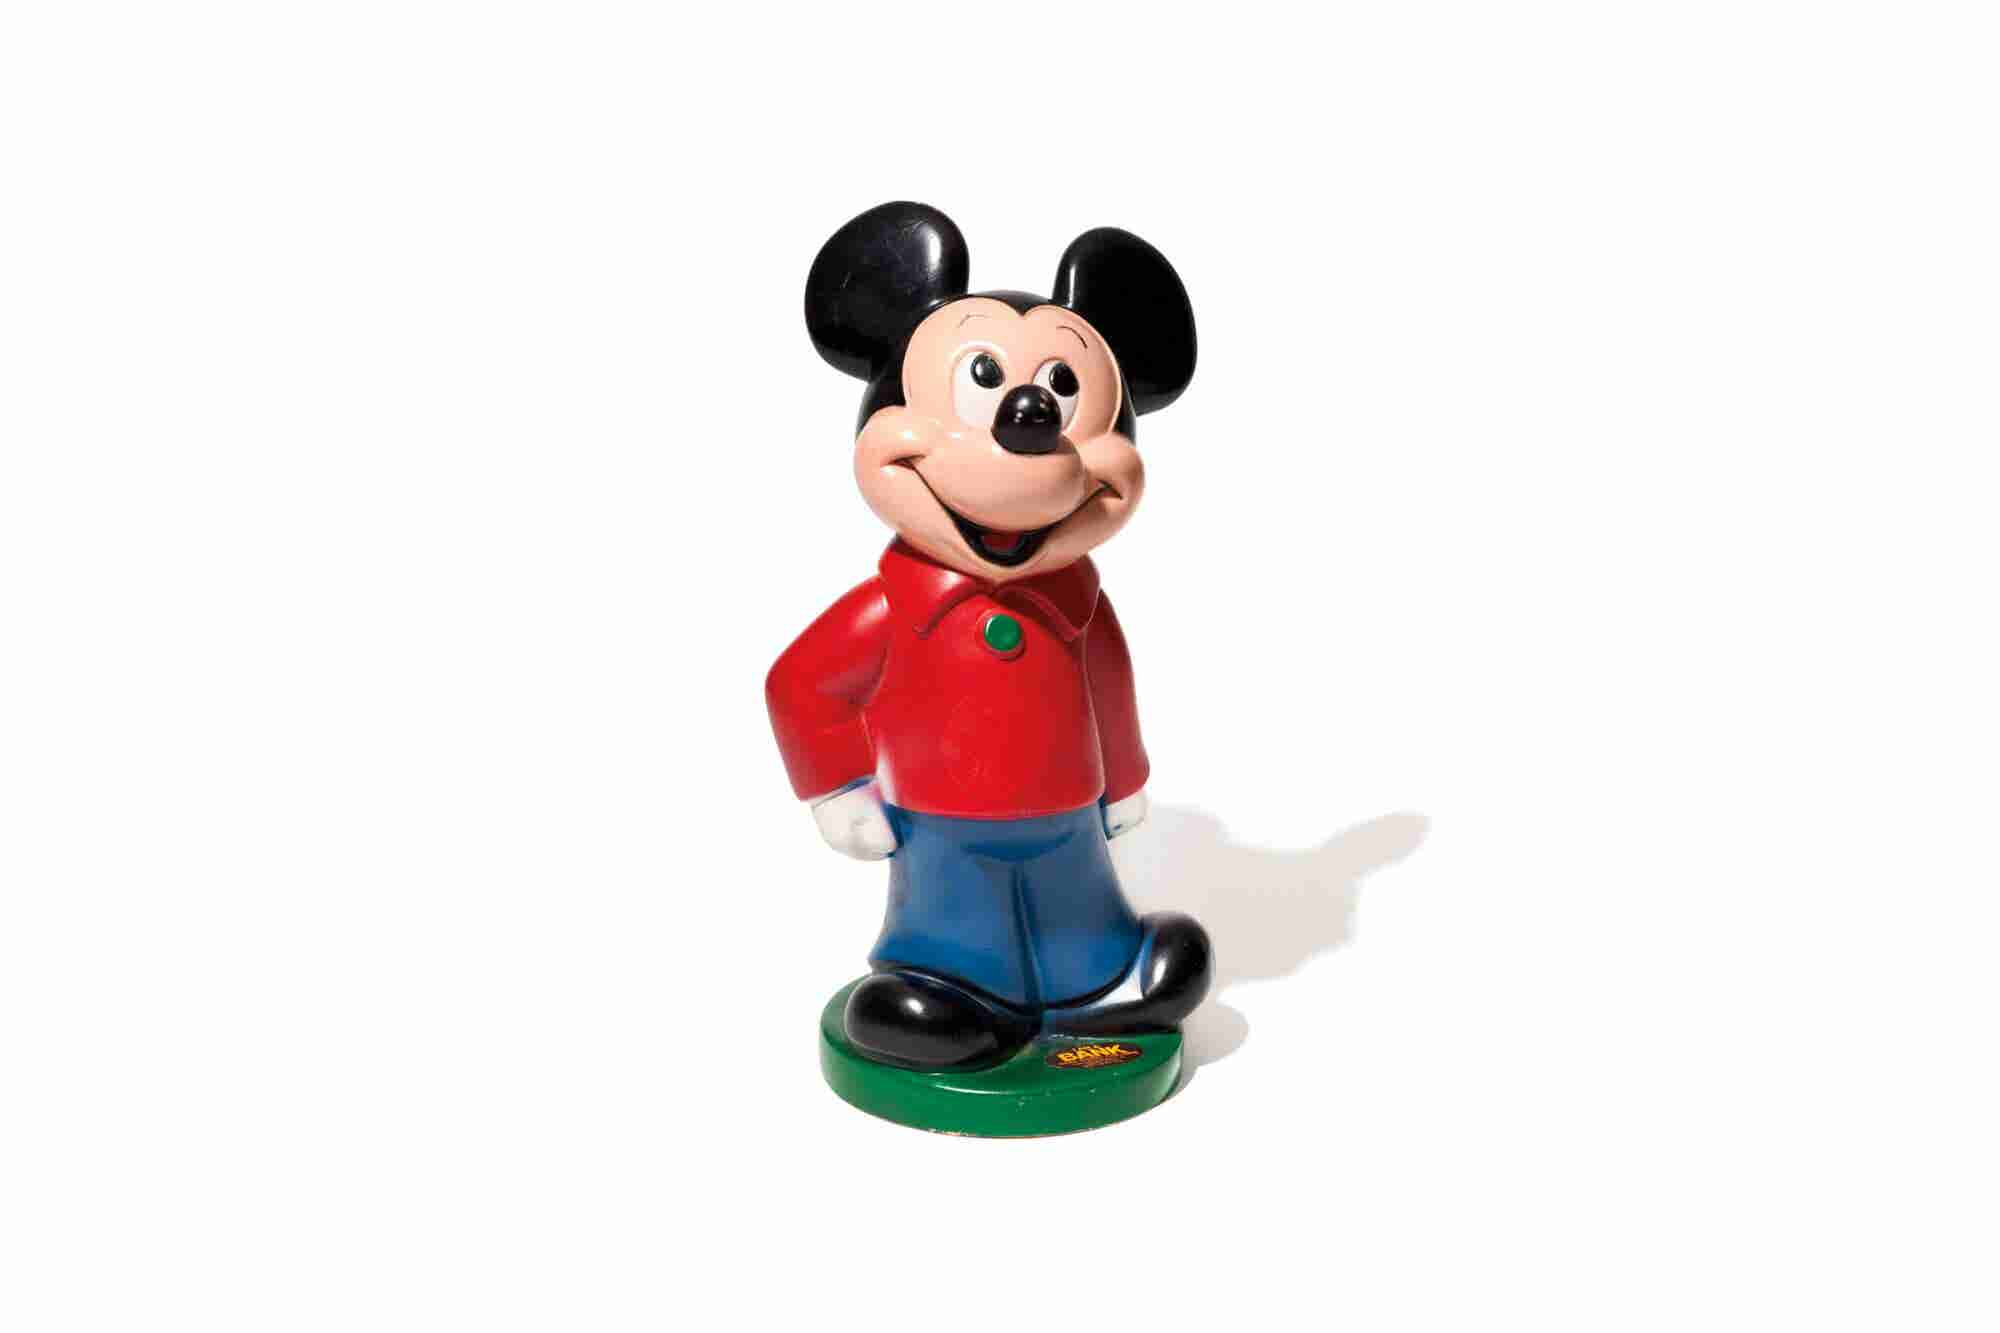 This Mickey Mouse Piggy Bank Reminds This Entrepreneur to Hustle Hard,...